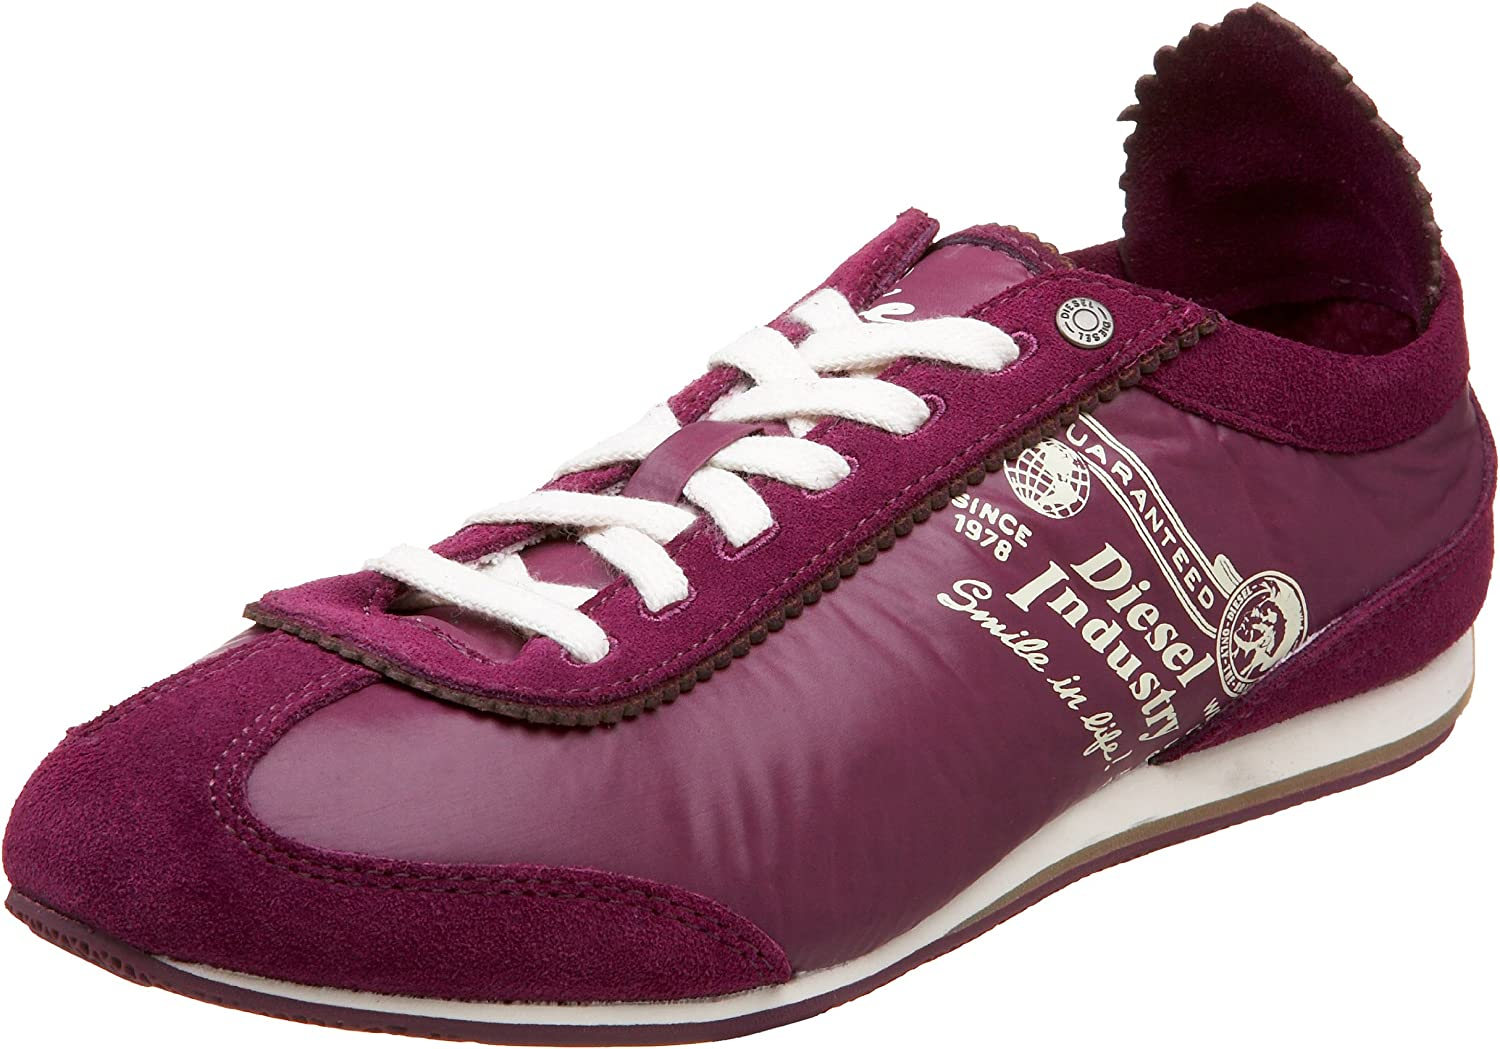 Max 64% OFF Diesel Women's Nitty Sneaker Sale price Lace-Up